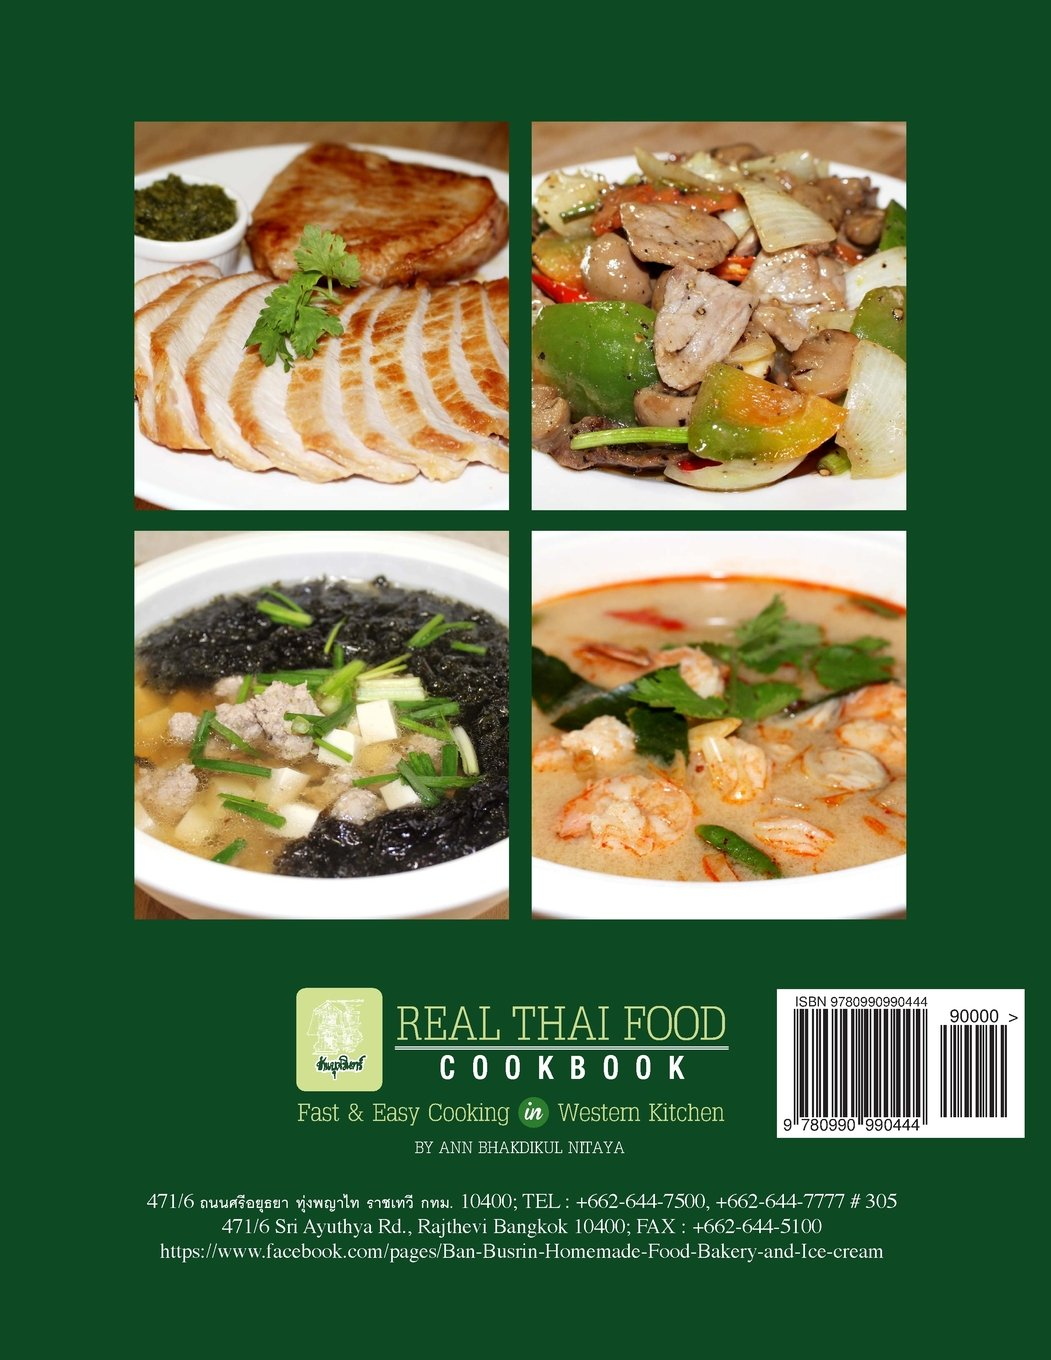 Real thai food fast easy cooking in western kitchen volume 1 real thai food fast easy cooking in western kitchen volume 1 ann bhakdikul nitaya 9780990990444 amazon books forumfinder Images